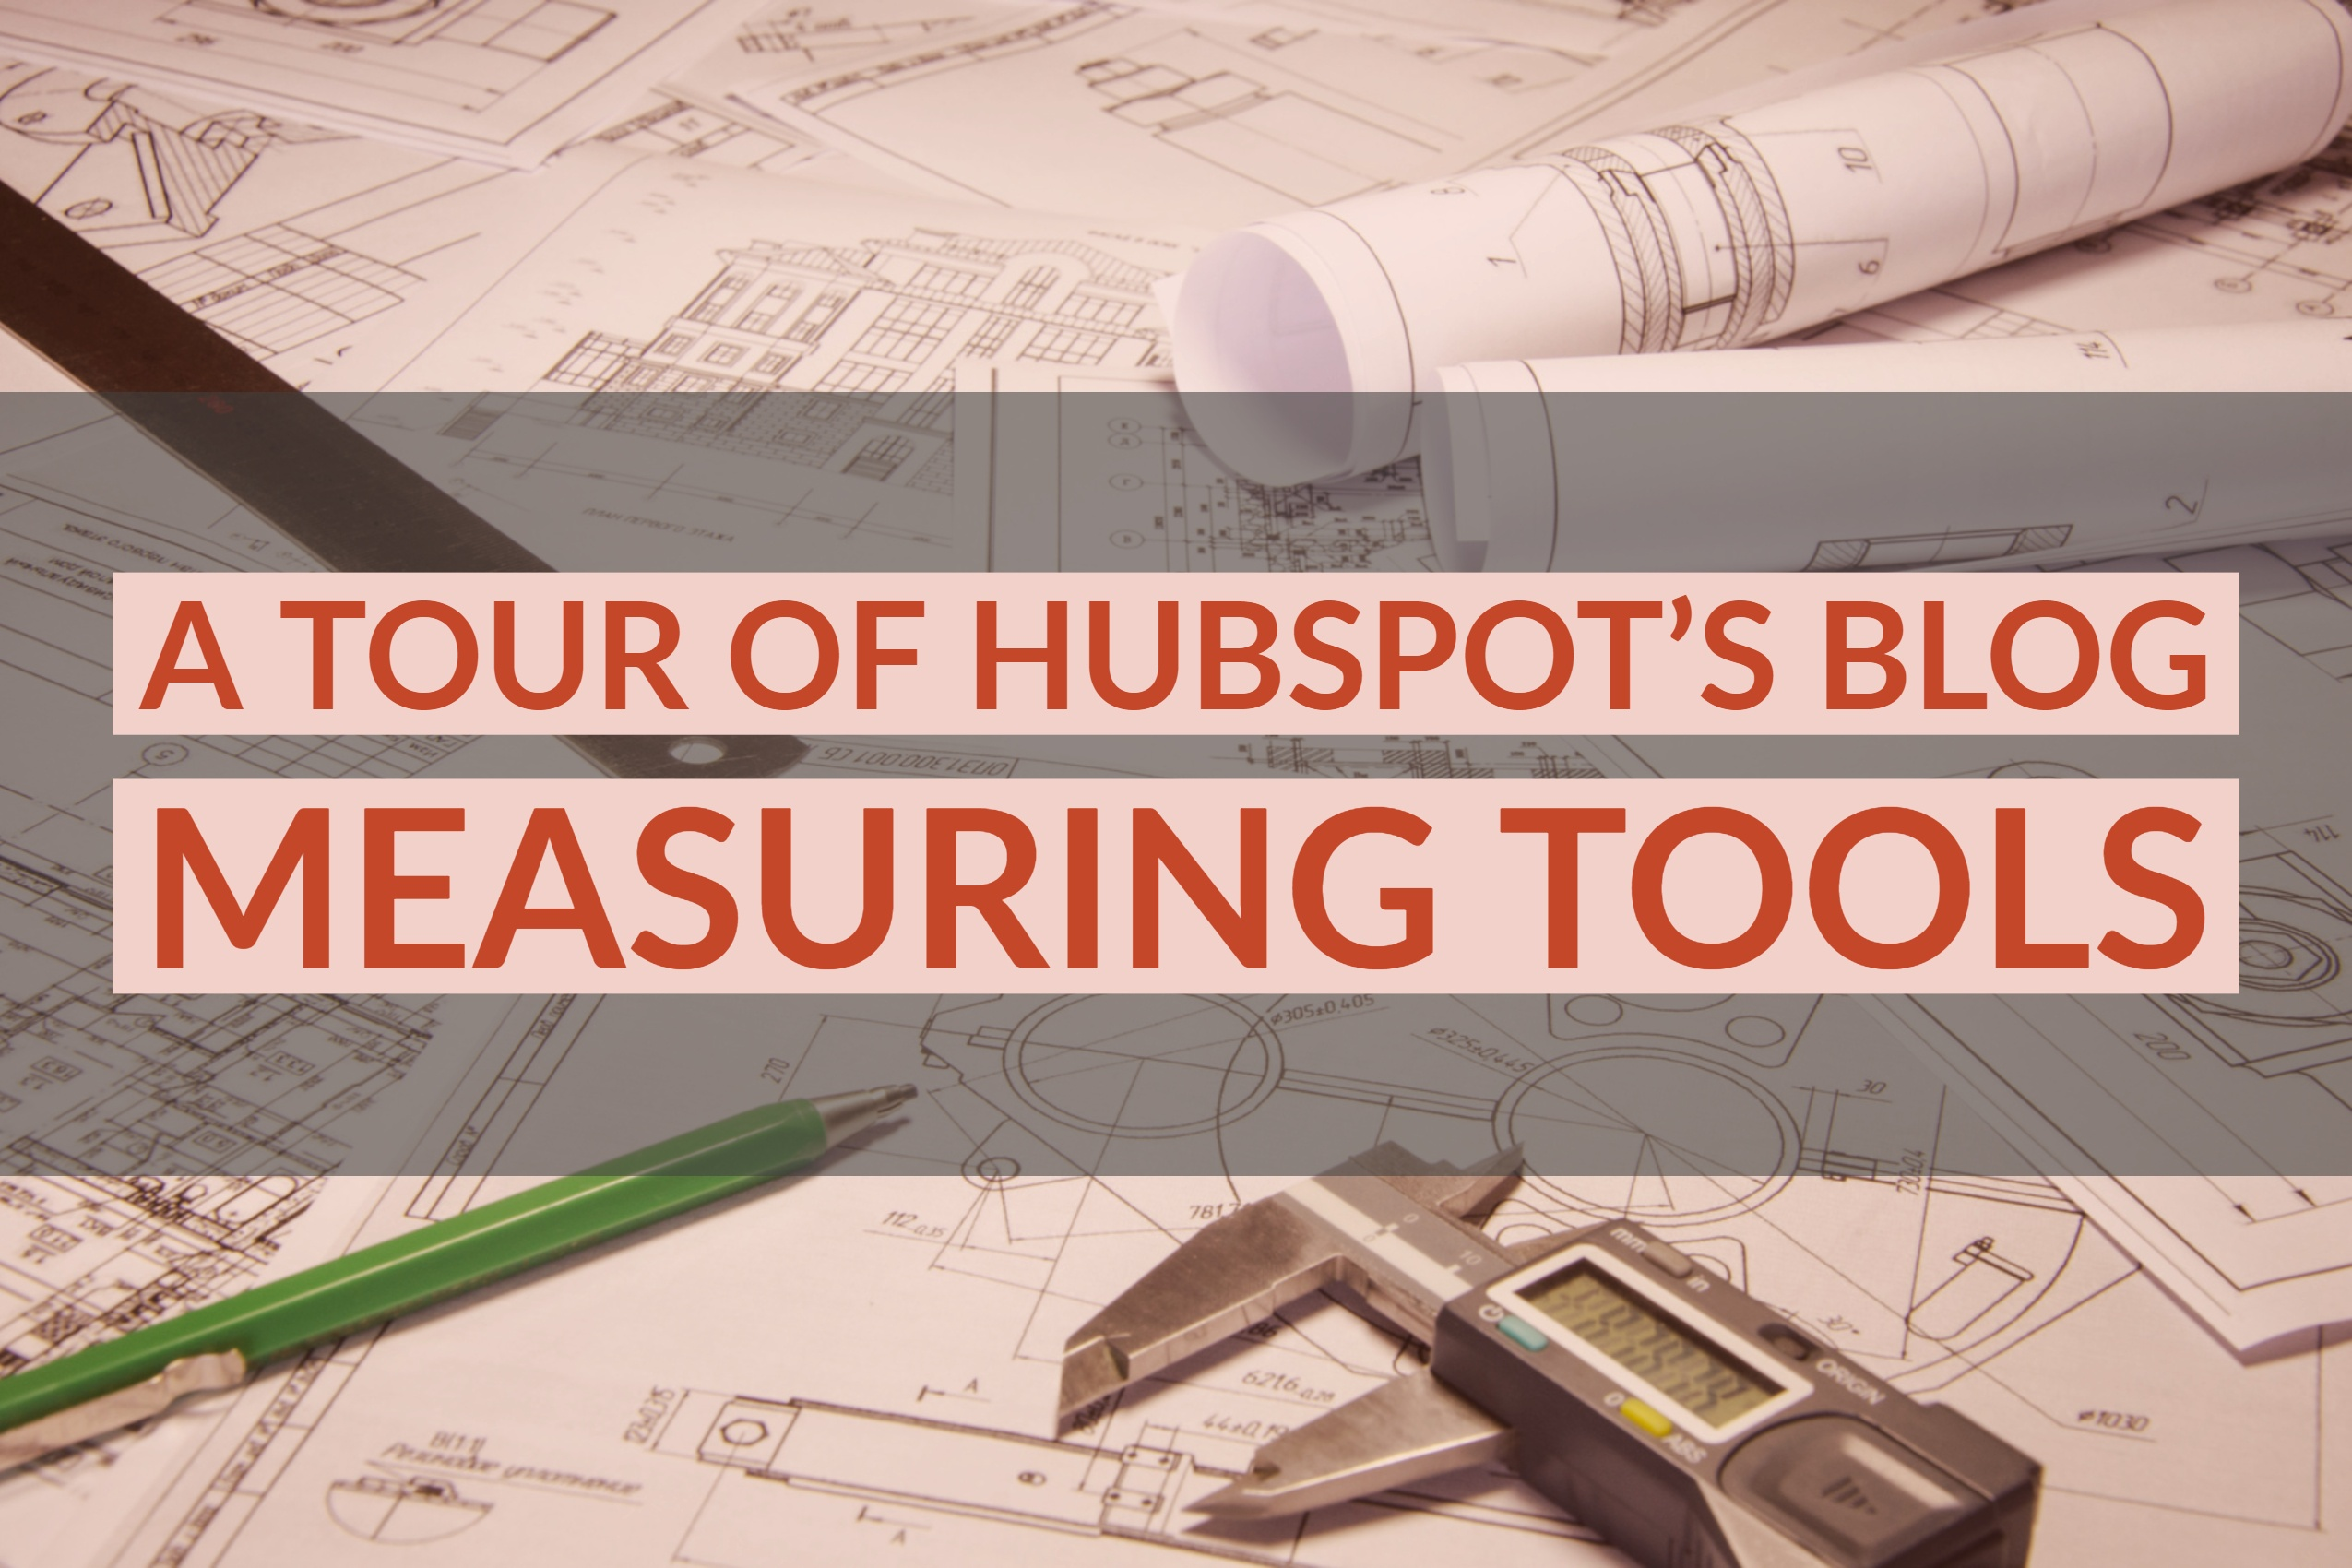 A Tour of HubSpot's Blog Measuring Tools